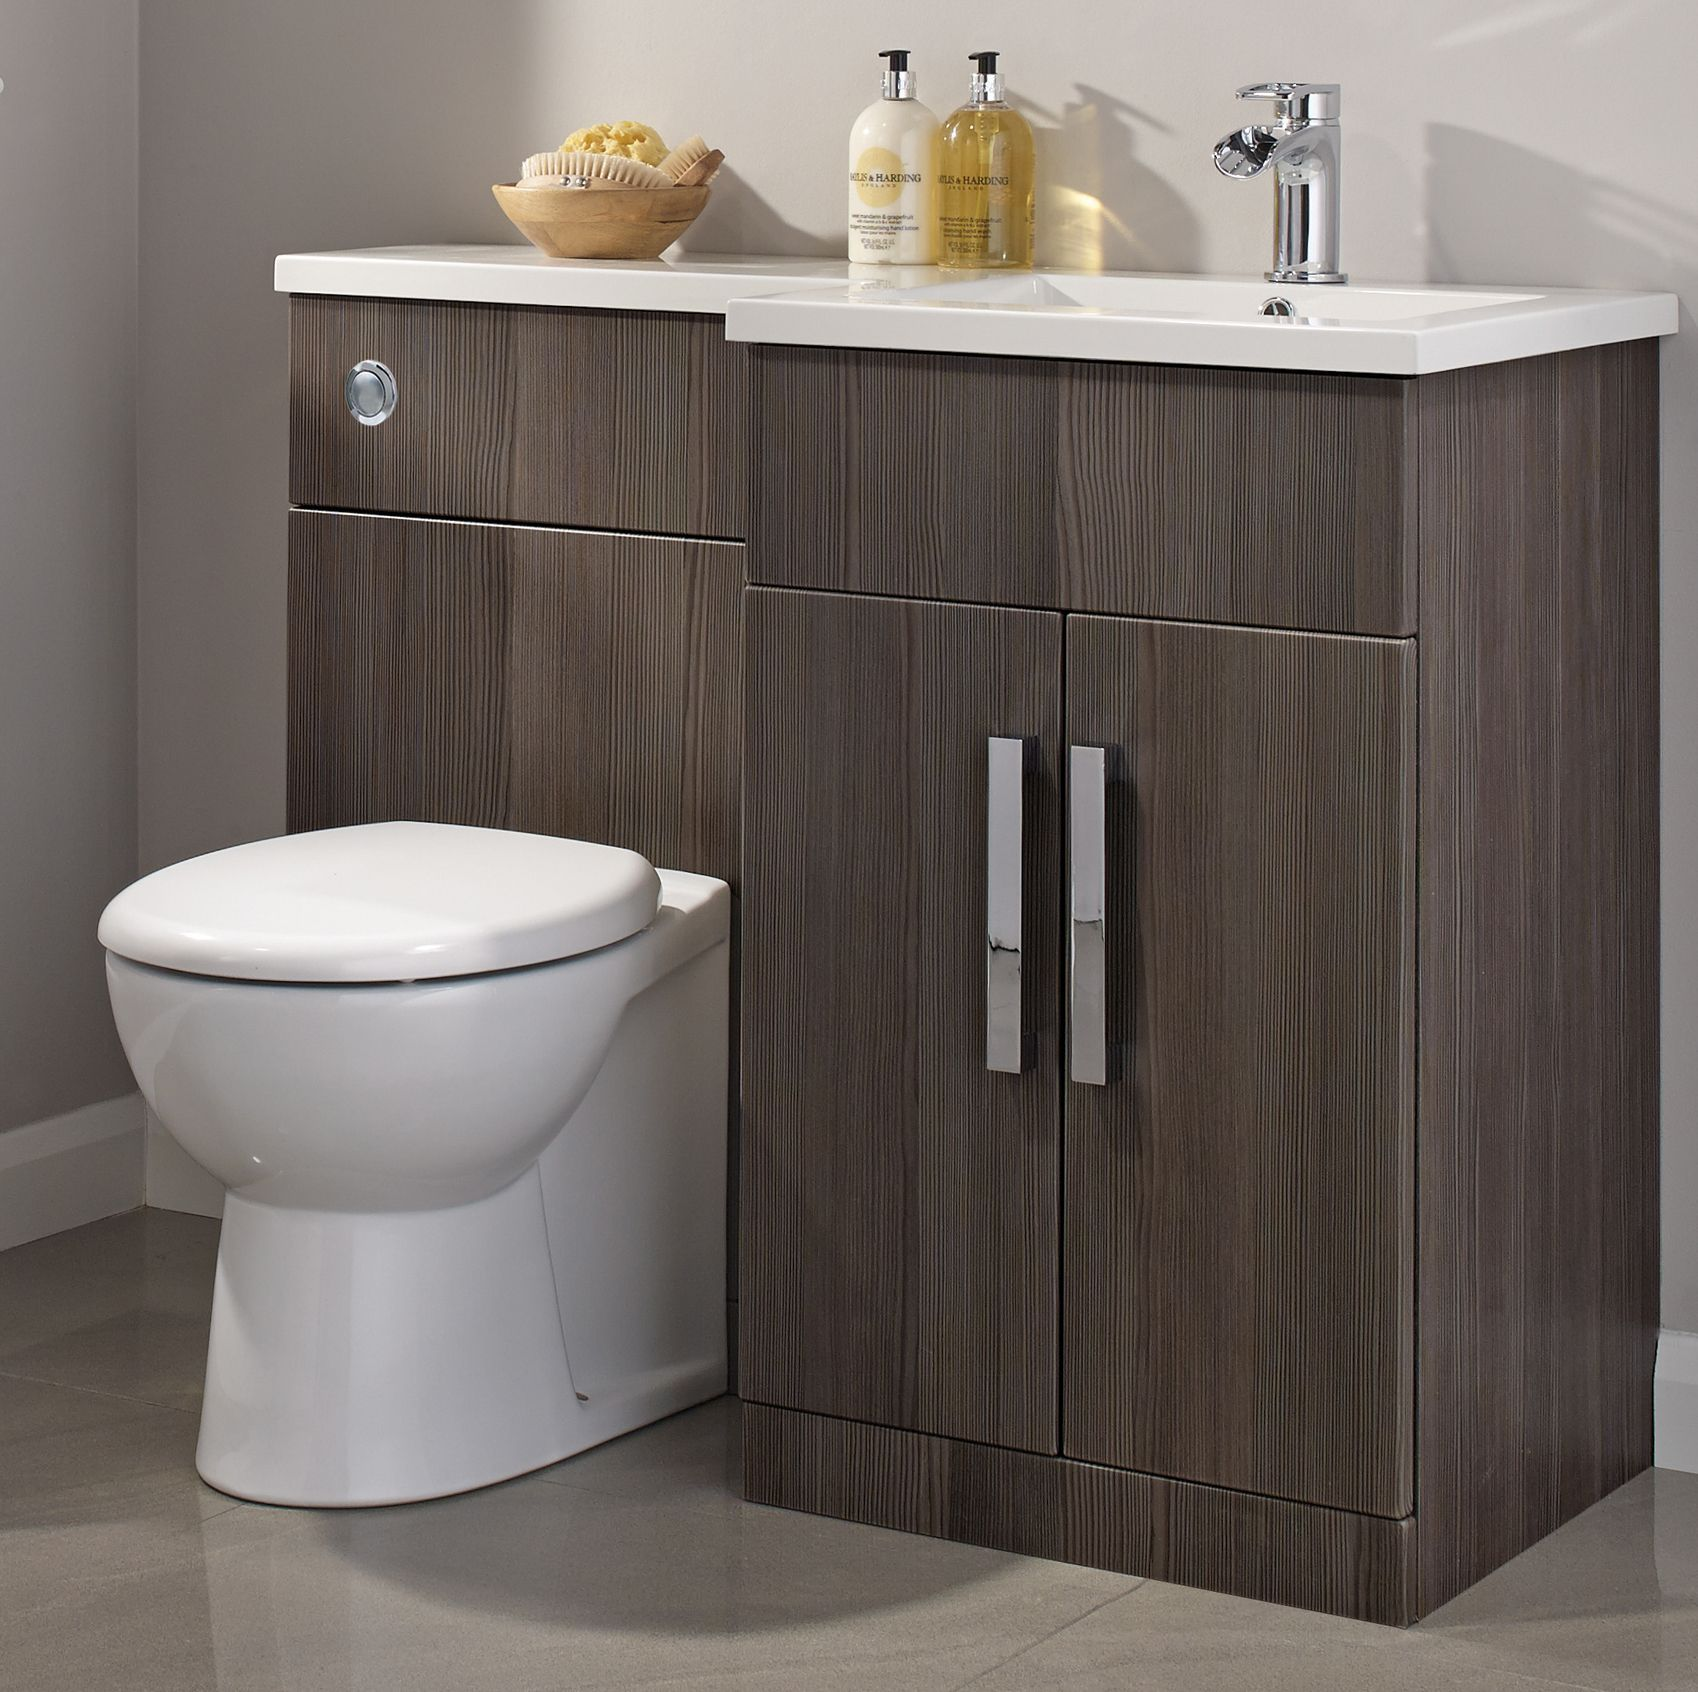 Bathroom Sinks B&Q cooke & lewis ardesio bodega grey rh vanity & toilet pack